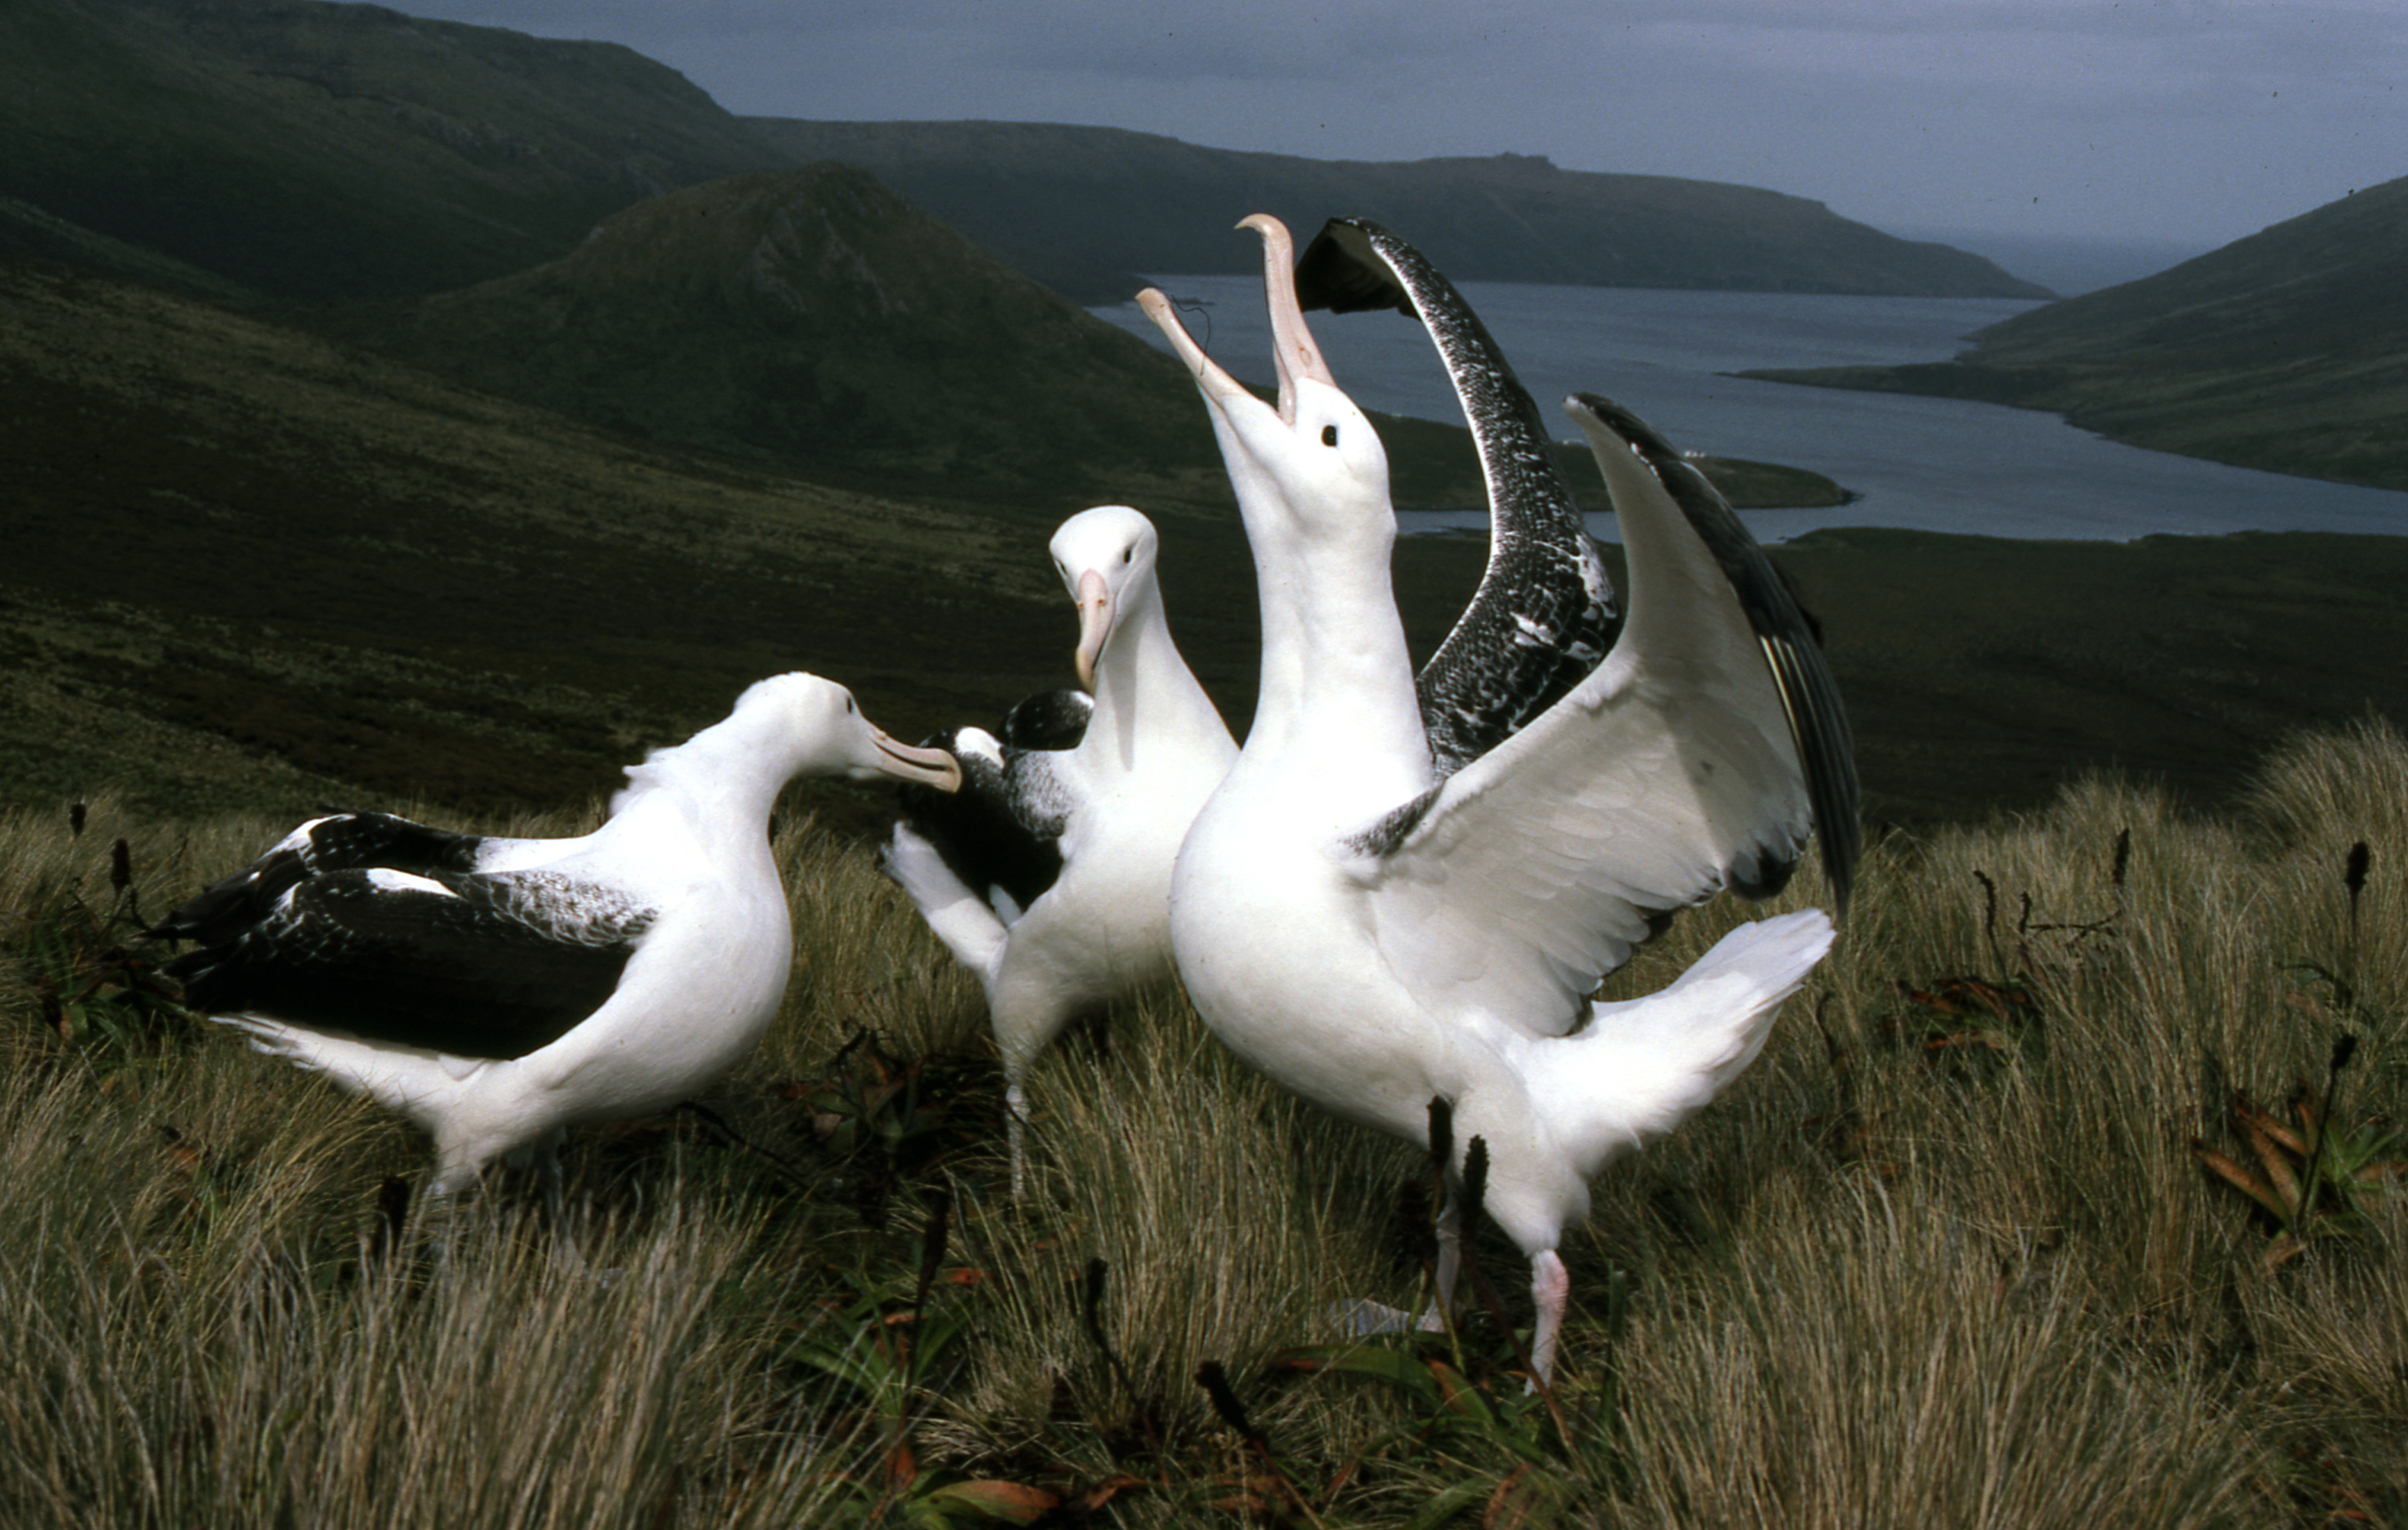 https://i0.wp.com/blog.forestandbird.org.nz/wp-content/uploads/Royal-albatrosses-displaying-photo-Peter-Moore.jpg